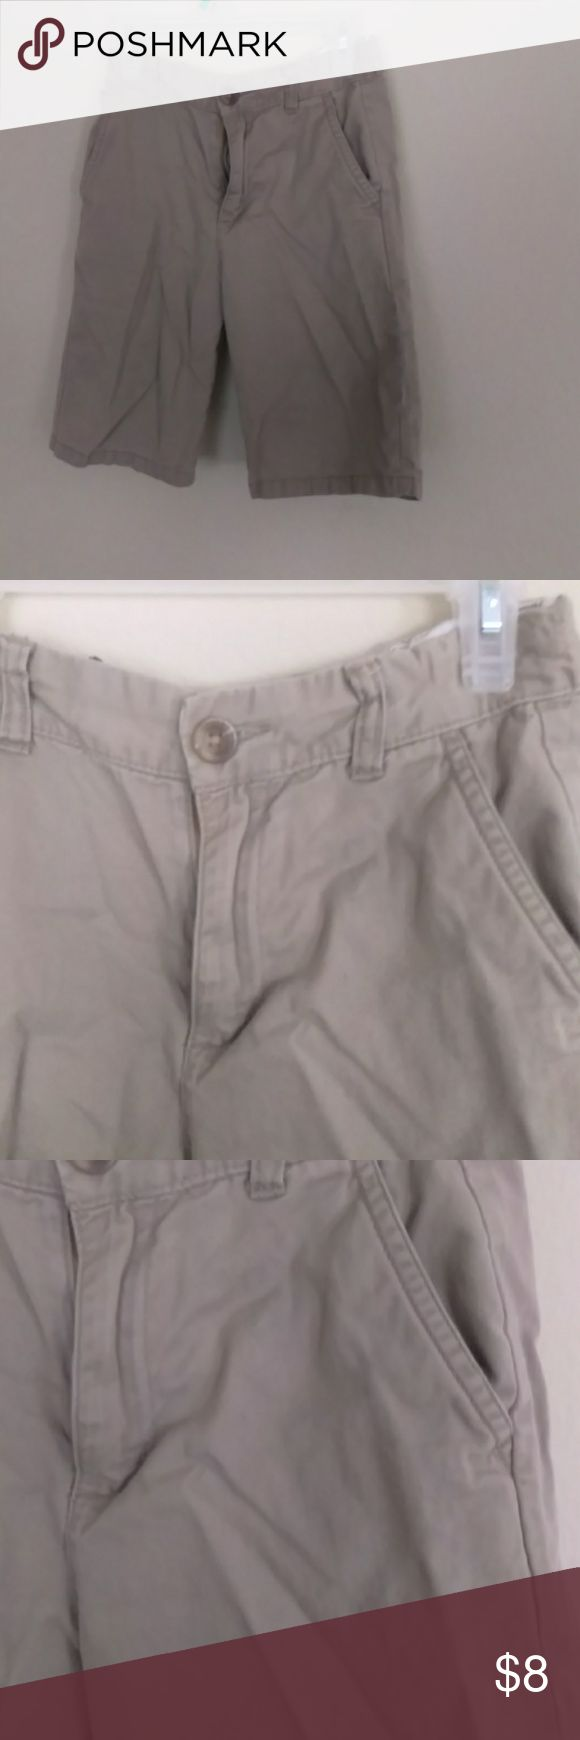 Children's place khaki shorts boys Khaki colored beige shorts for boys adjustable waist. Noticed small stain but it should be easy to wash out just needs ironing . I have lots of used boys and girls clothes so please follow I make great deals. Children's Place Bottoms Shorts